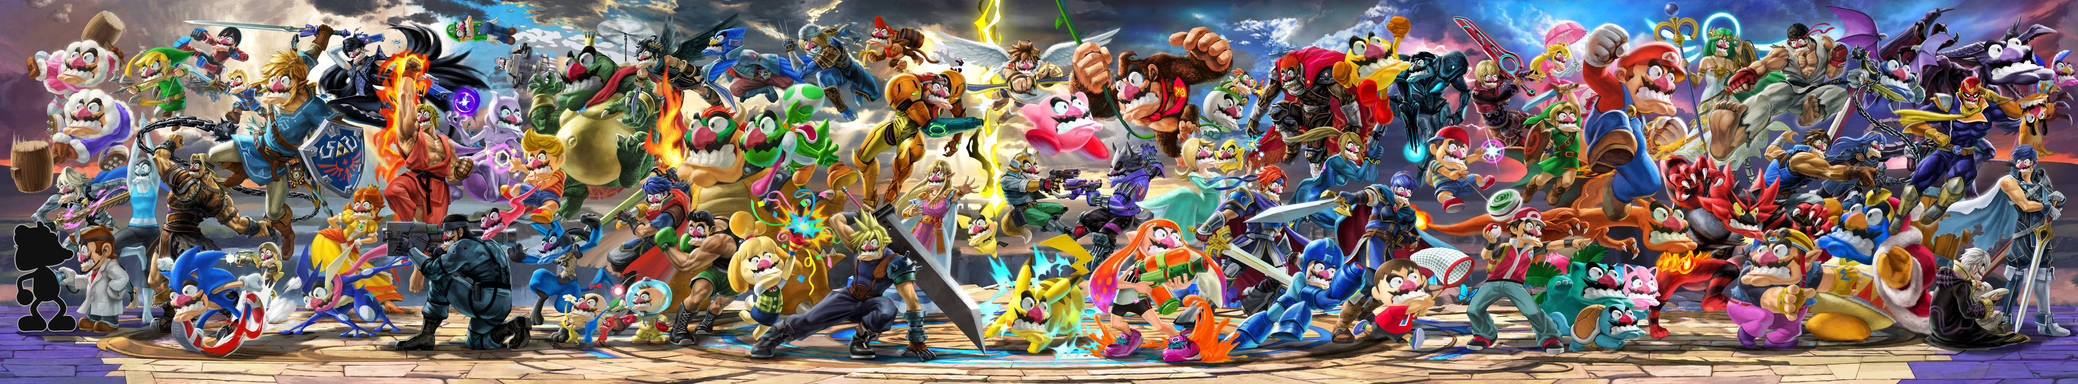 Everyone is Here, But Everyone is Wario (V2)